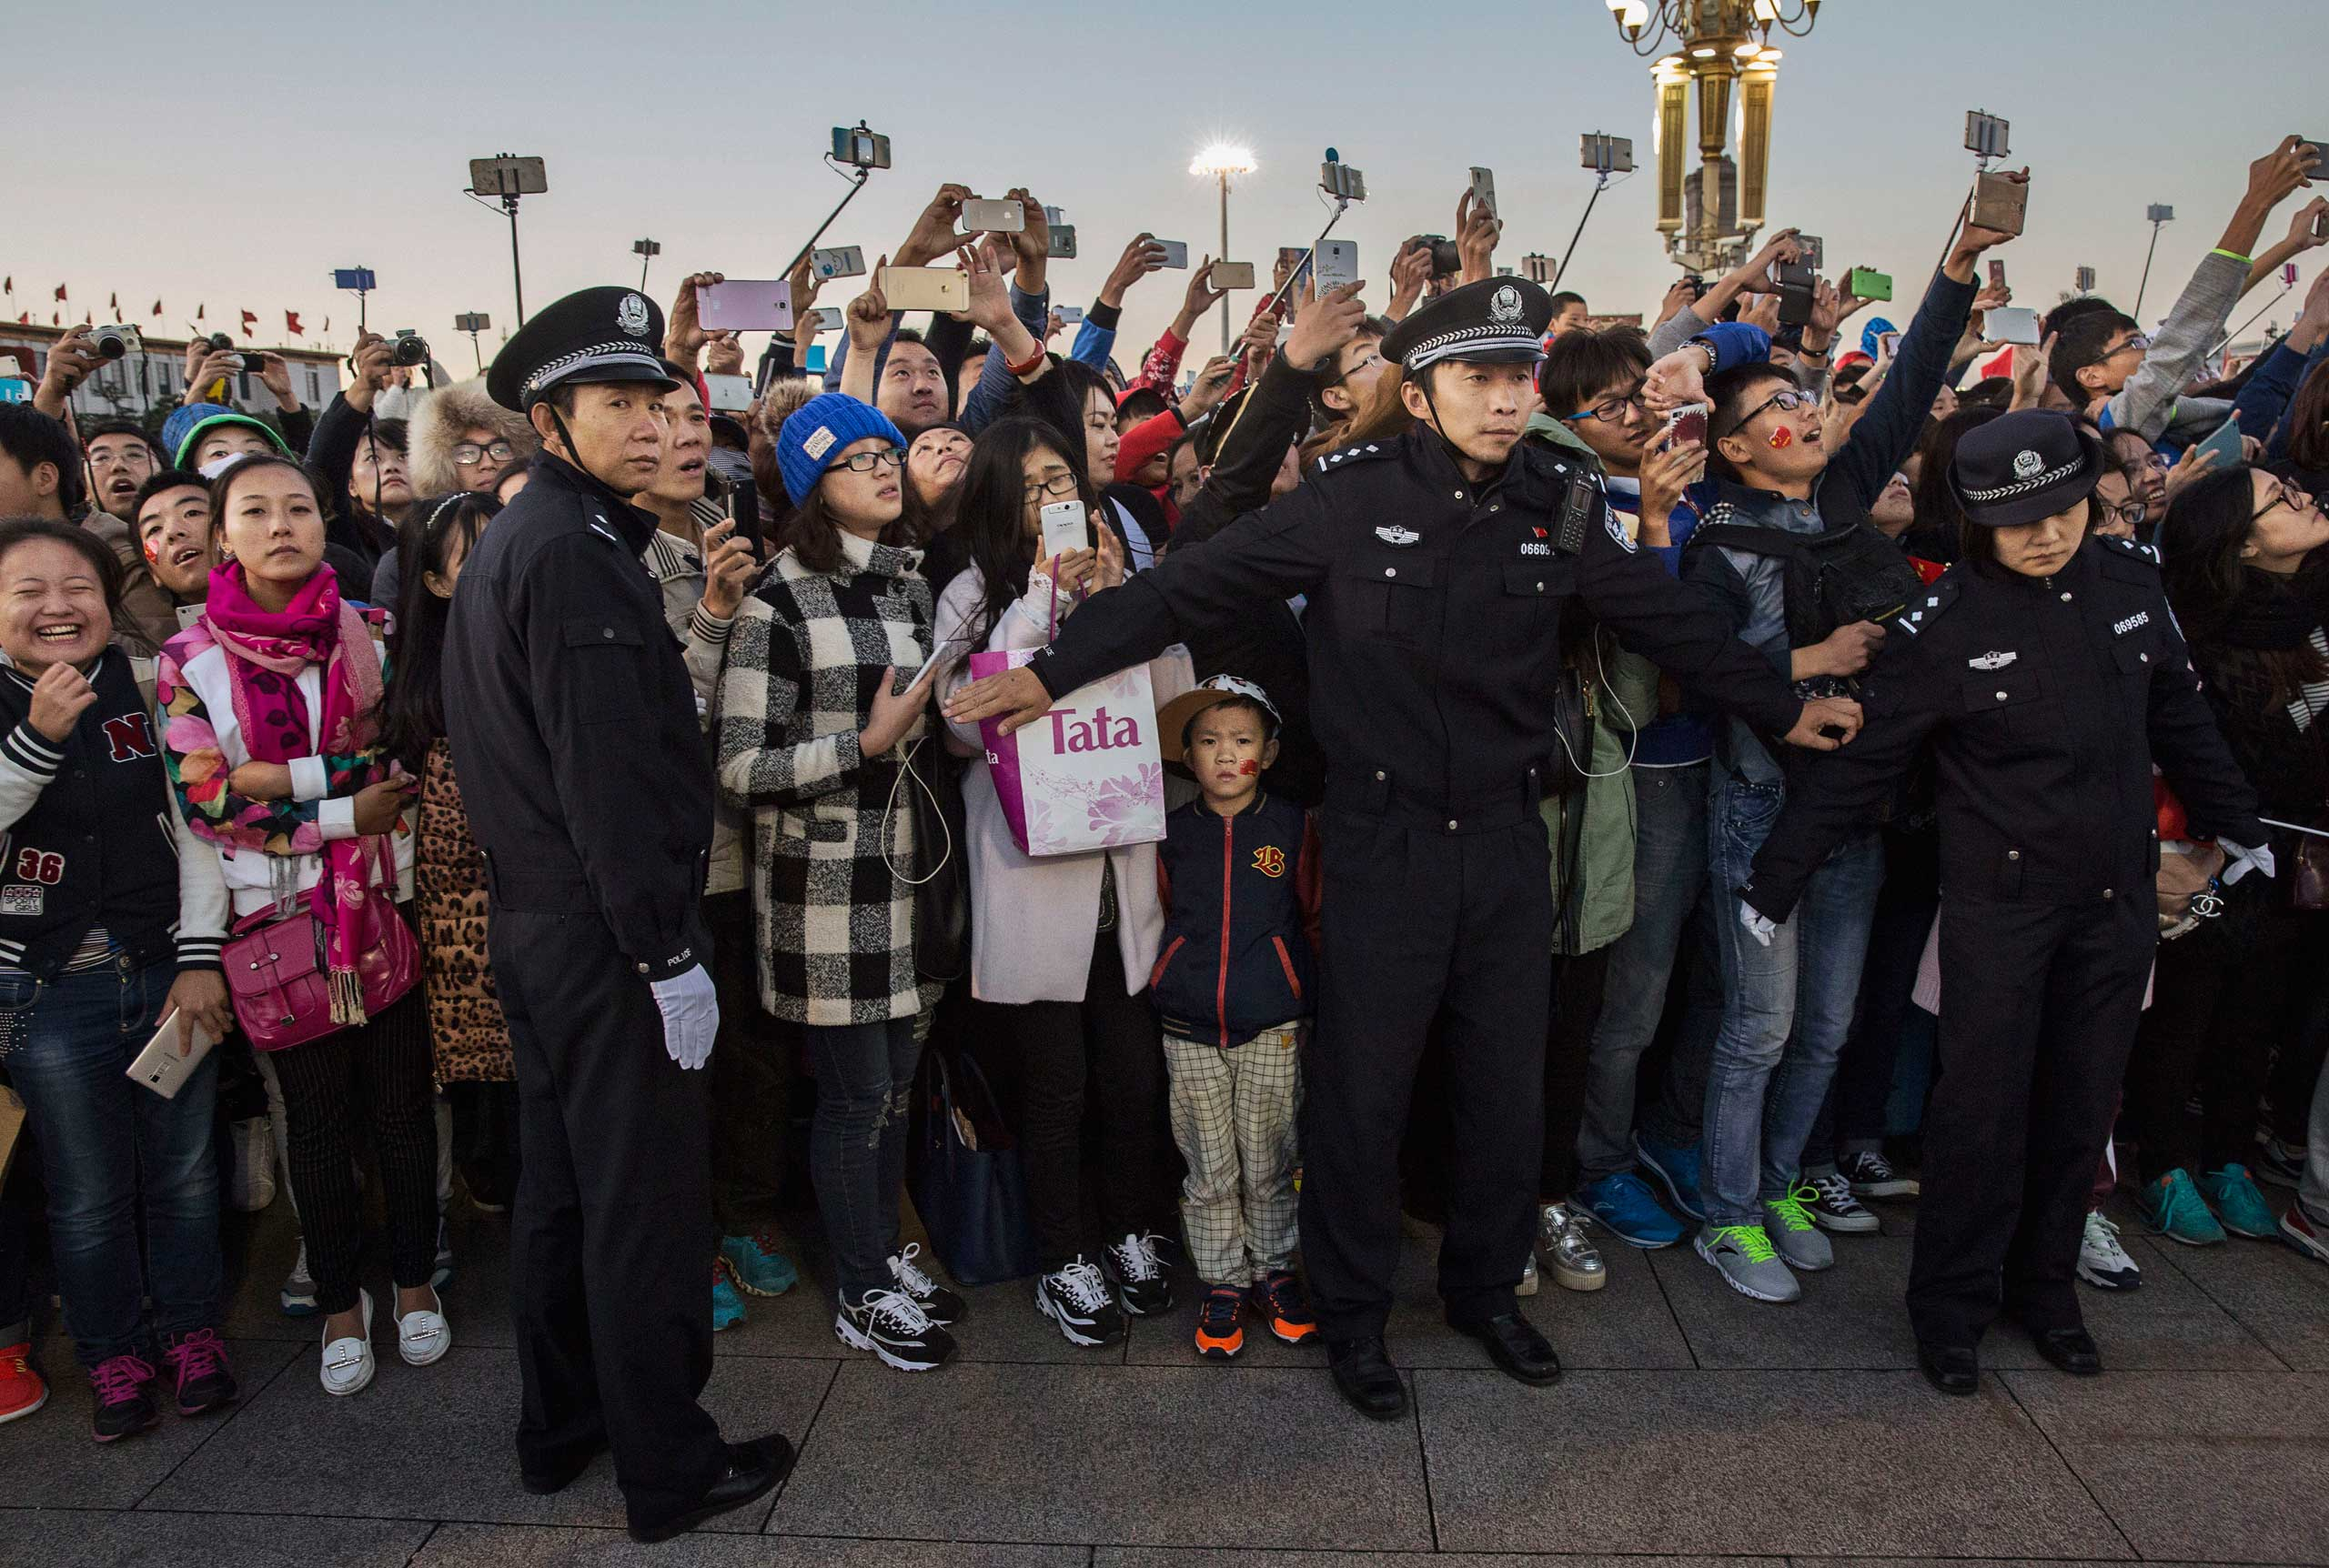 Police officers hold back crowds as they gather at the official flag raising ceremony at Tiananmen Square to mark the 66th National Day in Beijing, on Oct. 1, 2015.